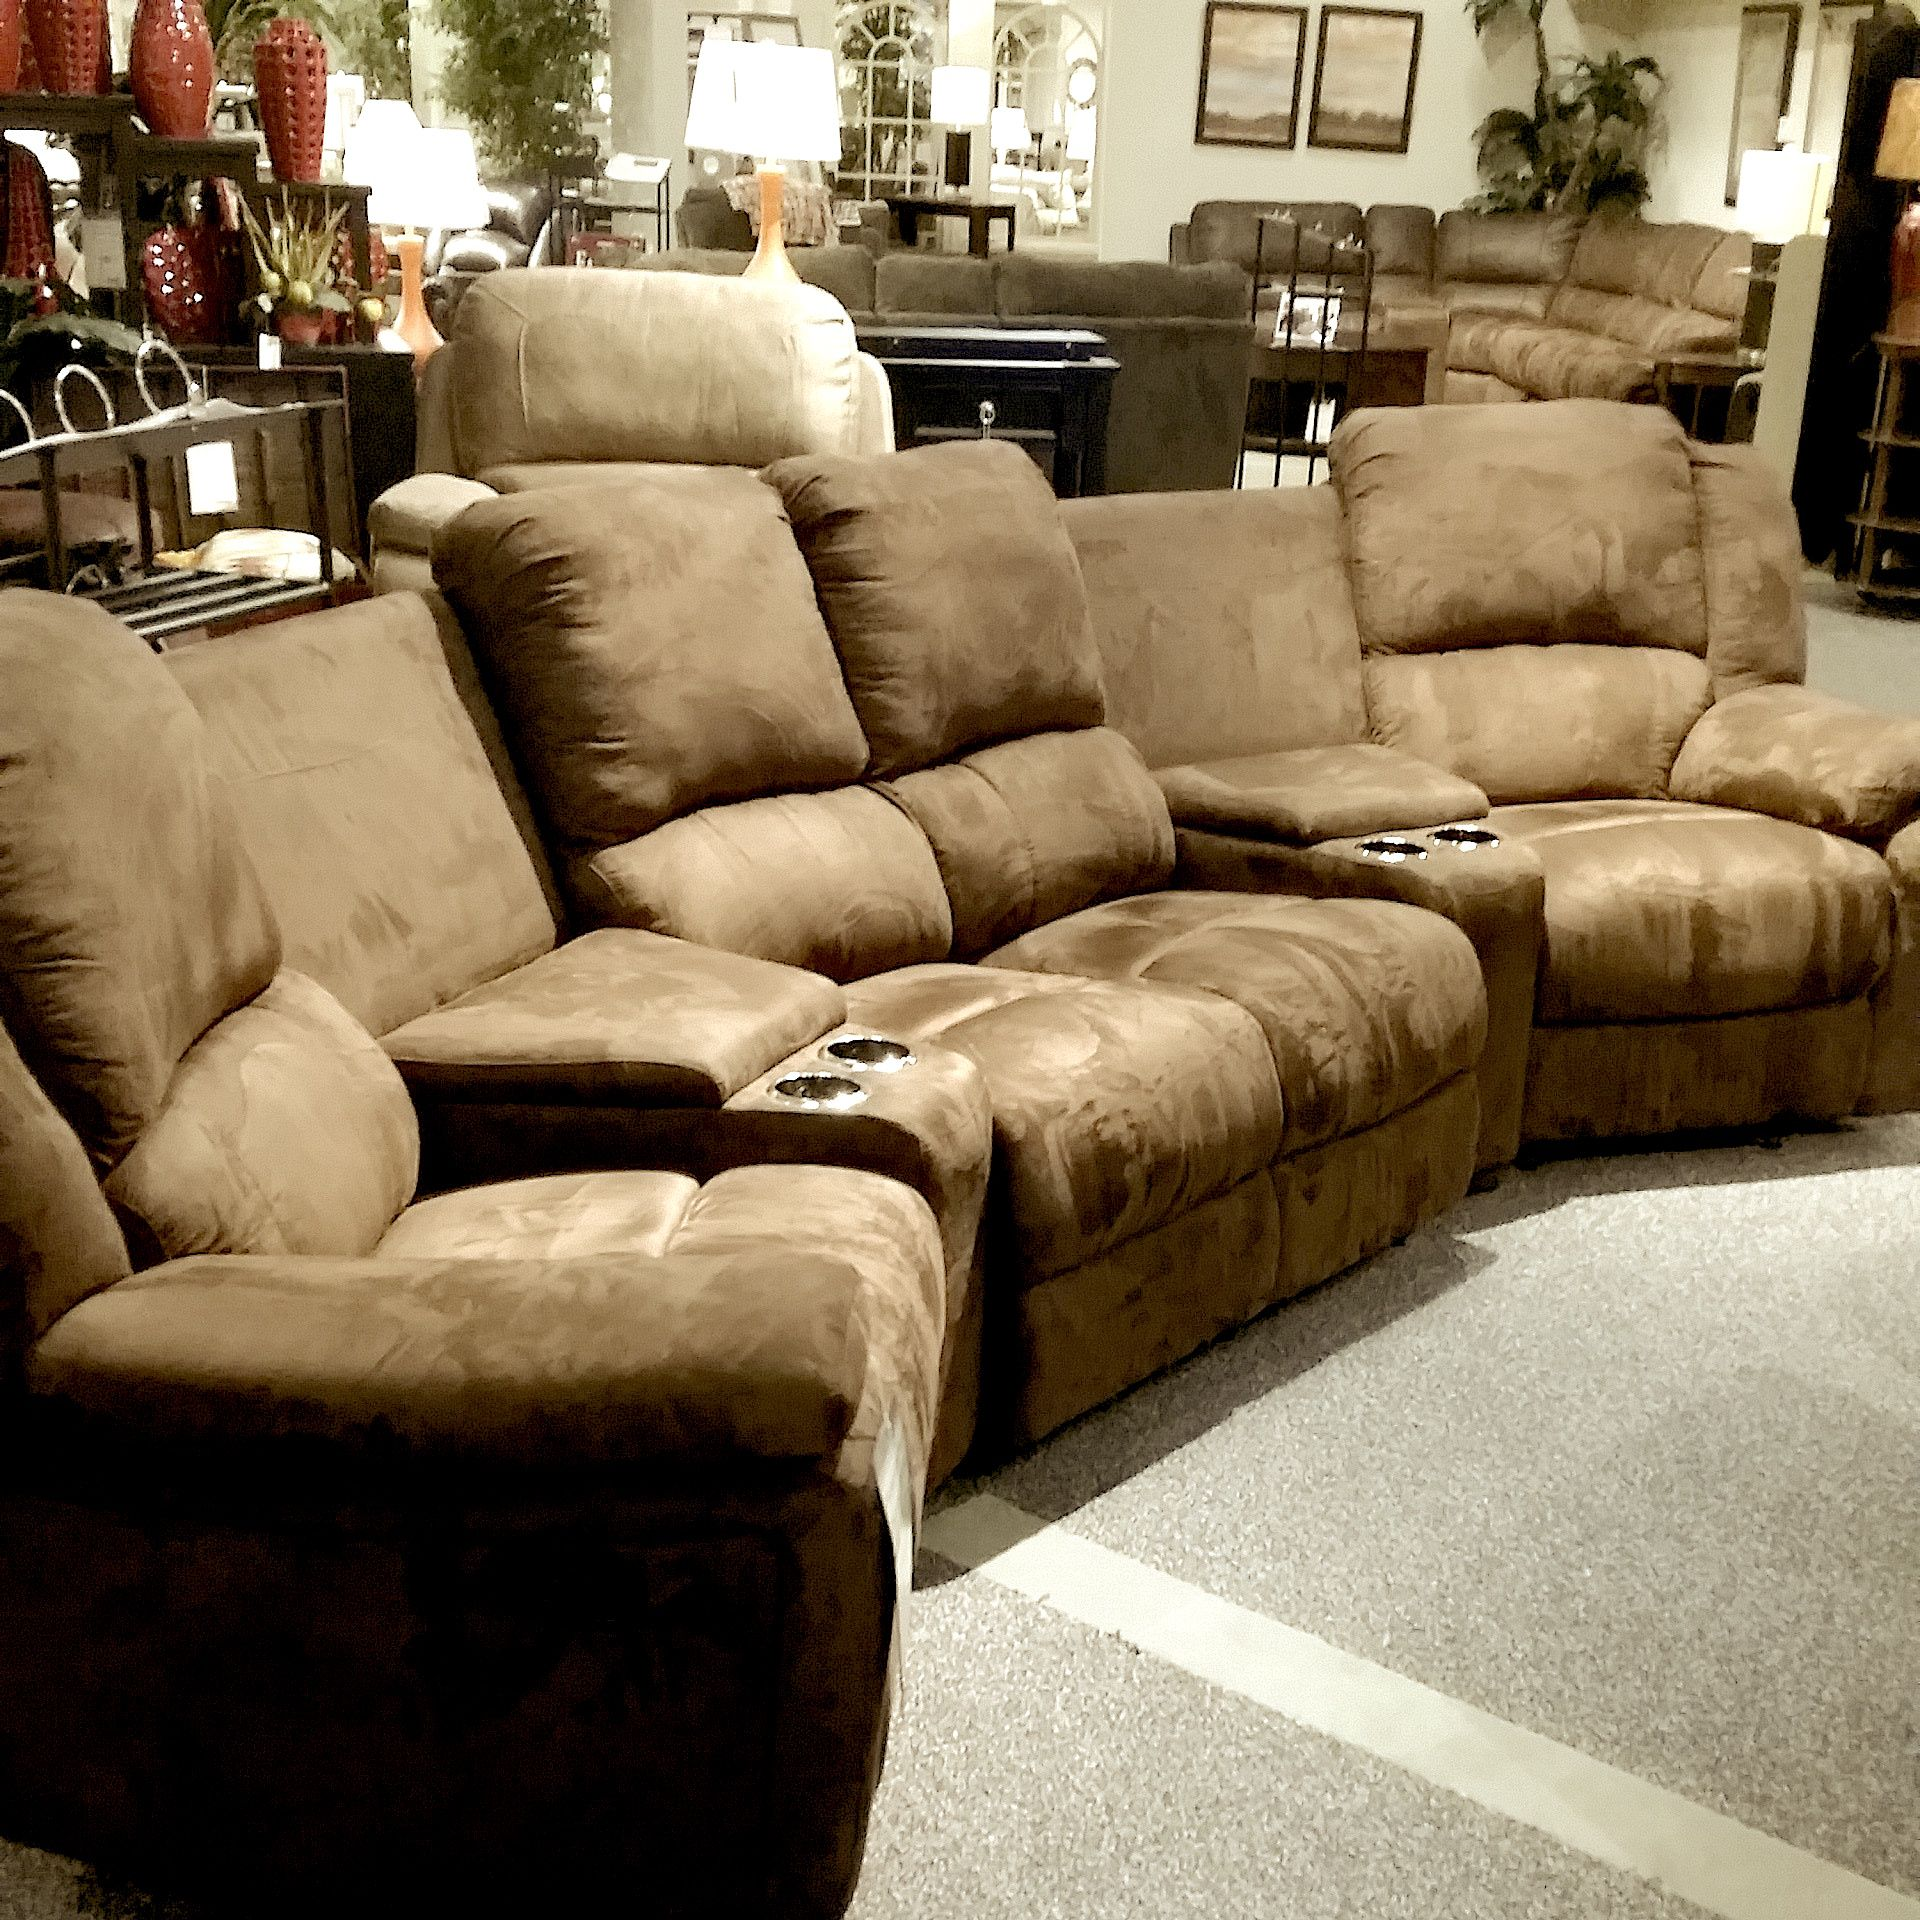 Cardis Furniture Sectional Coach Sofa Recliner Seating